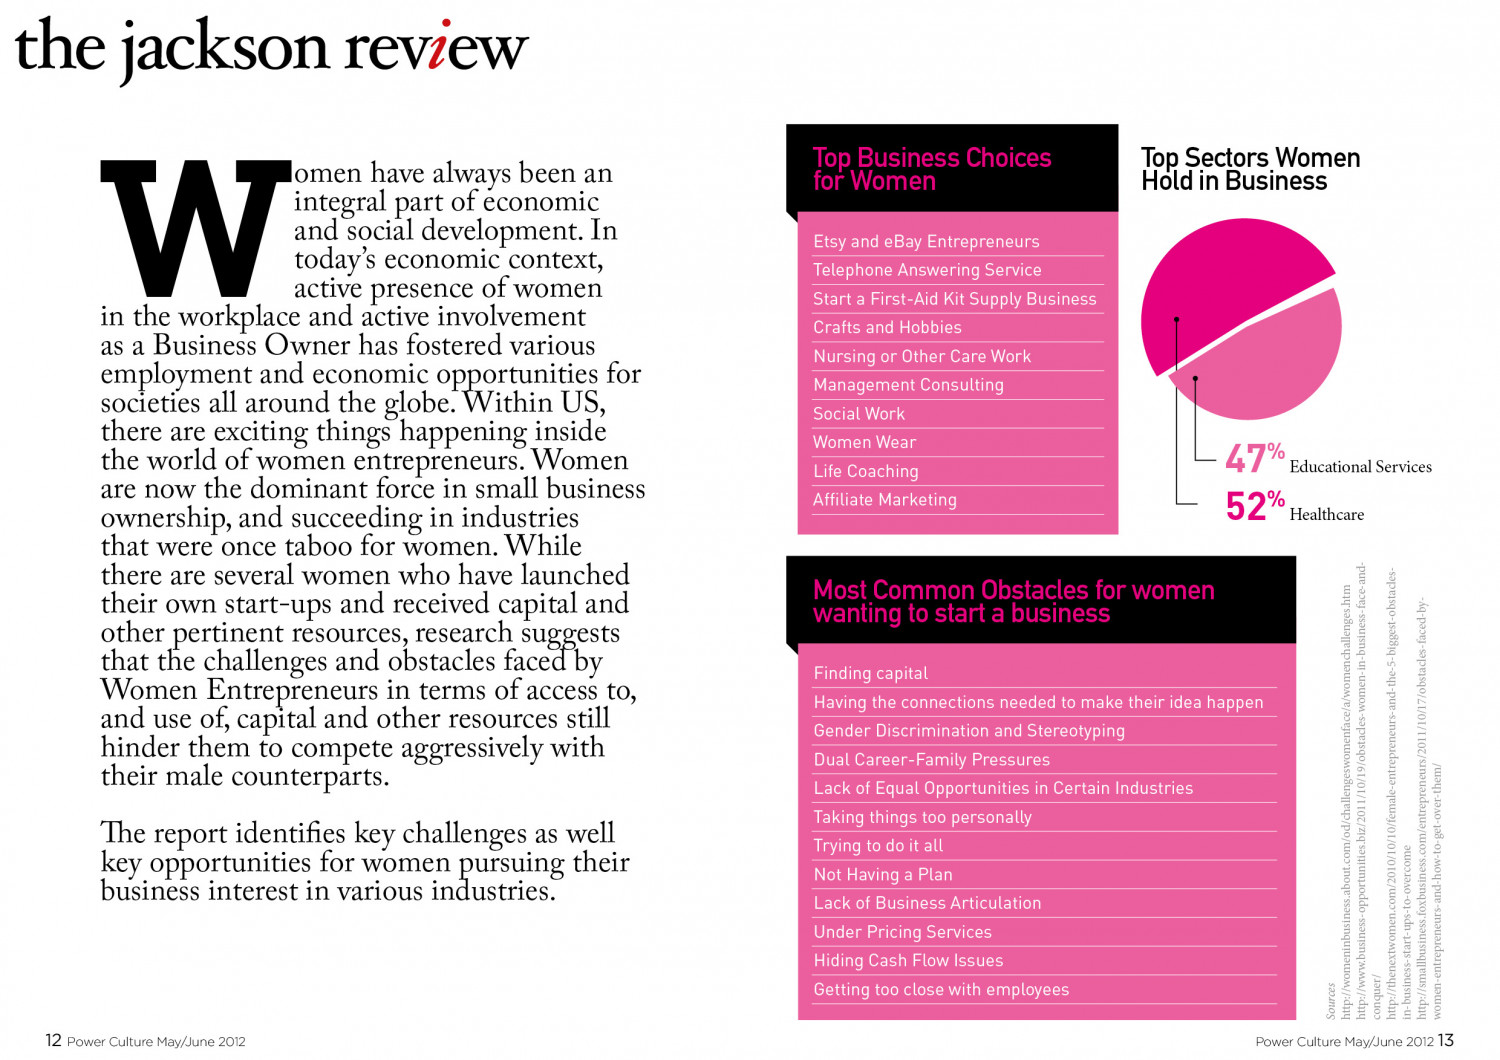 The Jackson Review Infographic